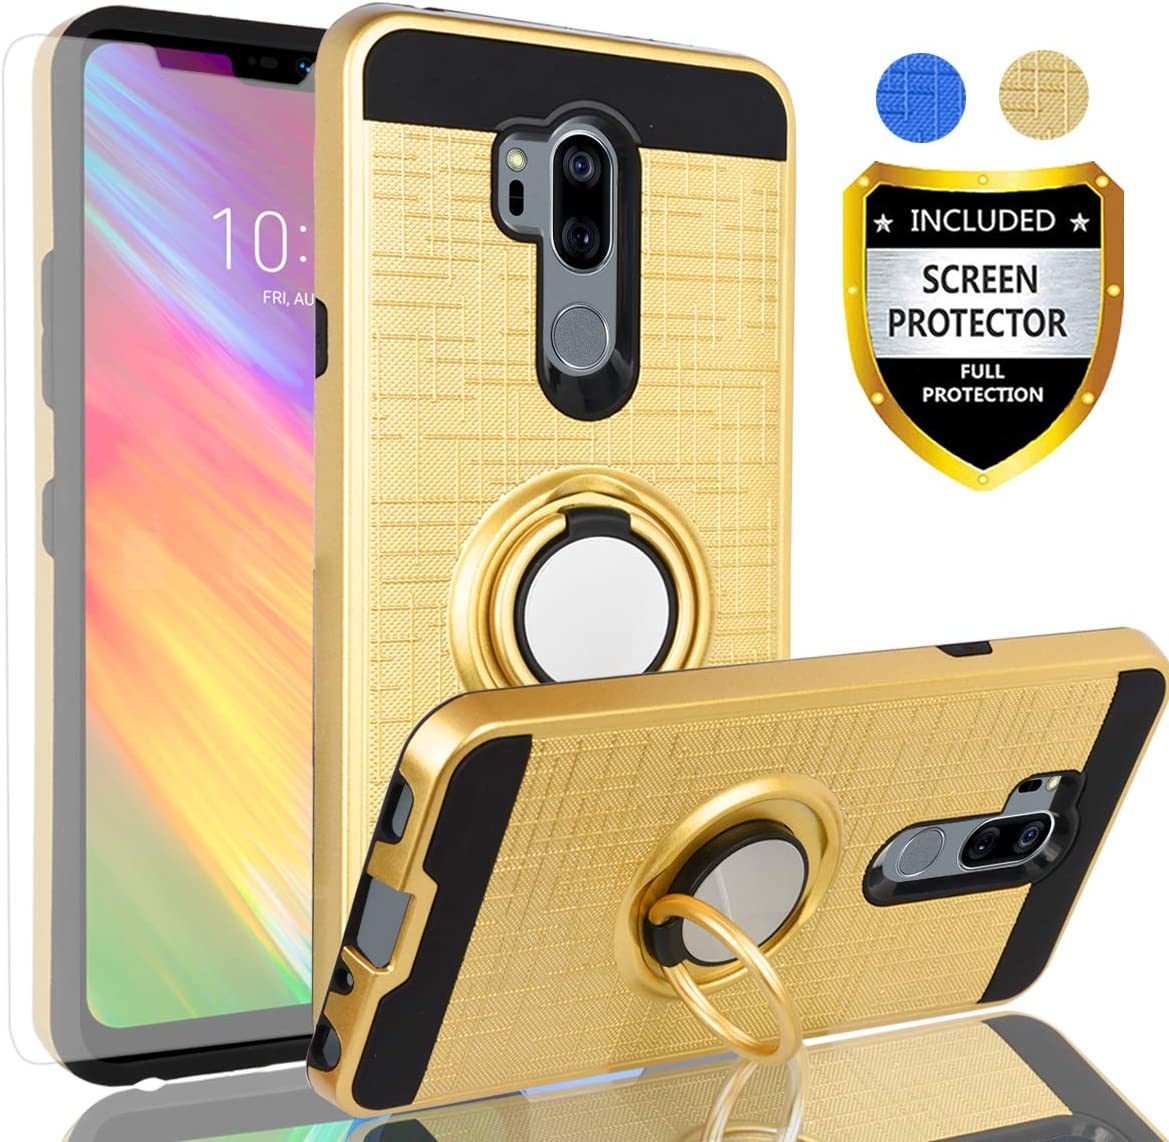 LG G7 ThinQ Case,LG G7 Phone Case,LG G7 Case with HD Screen Protector,AYMECL LG G7 Cellphone 360 Degree Rotating Ring Holder Dual Layer Full-Body Protective Cases Cover for LG G7-ZR Golden